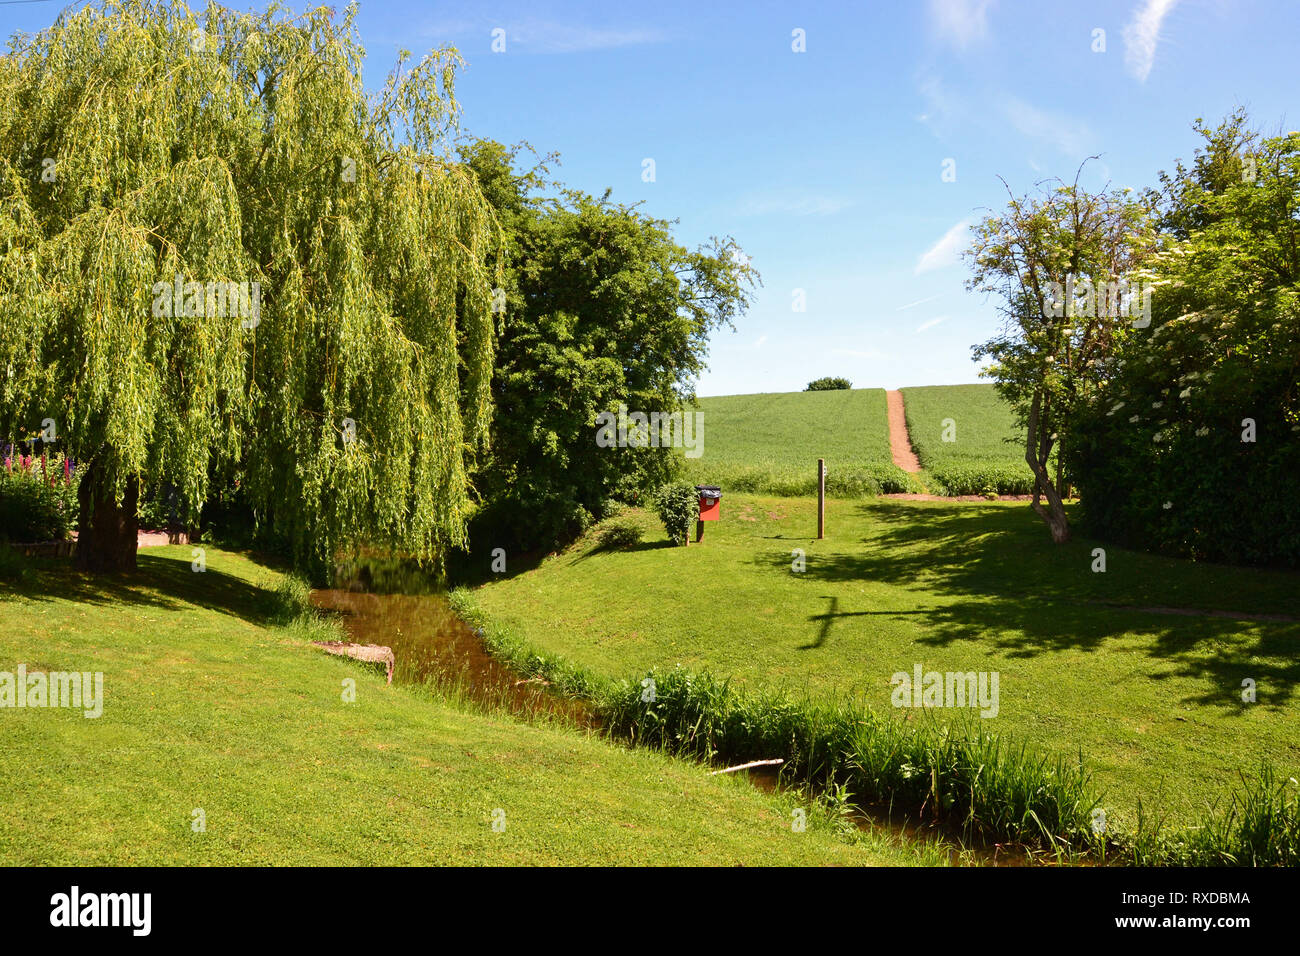 Pretty recreation ground / park with a stream running through it, on the egde of Lavenham town in Suffolk, UK. Sunny day. - Stock Image